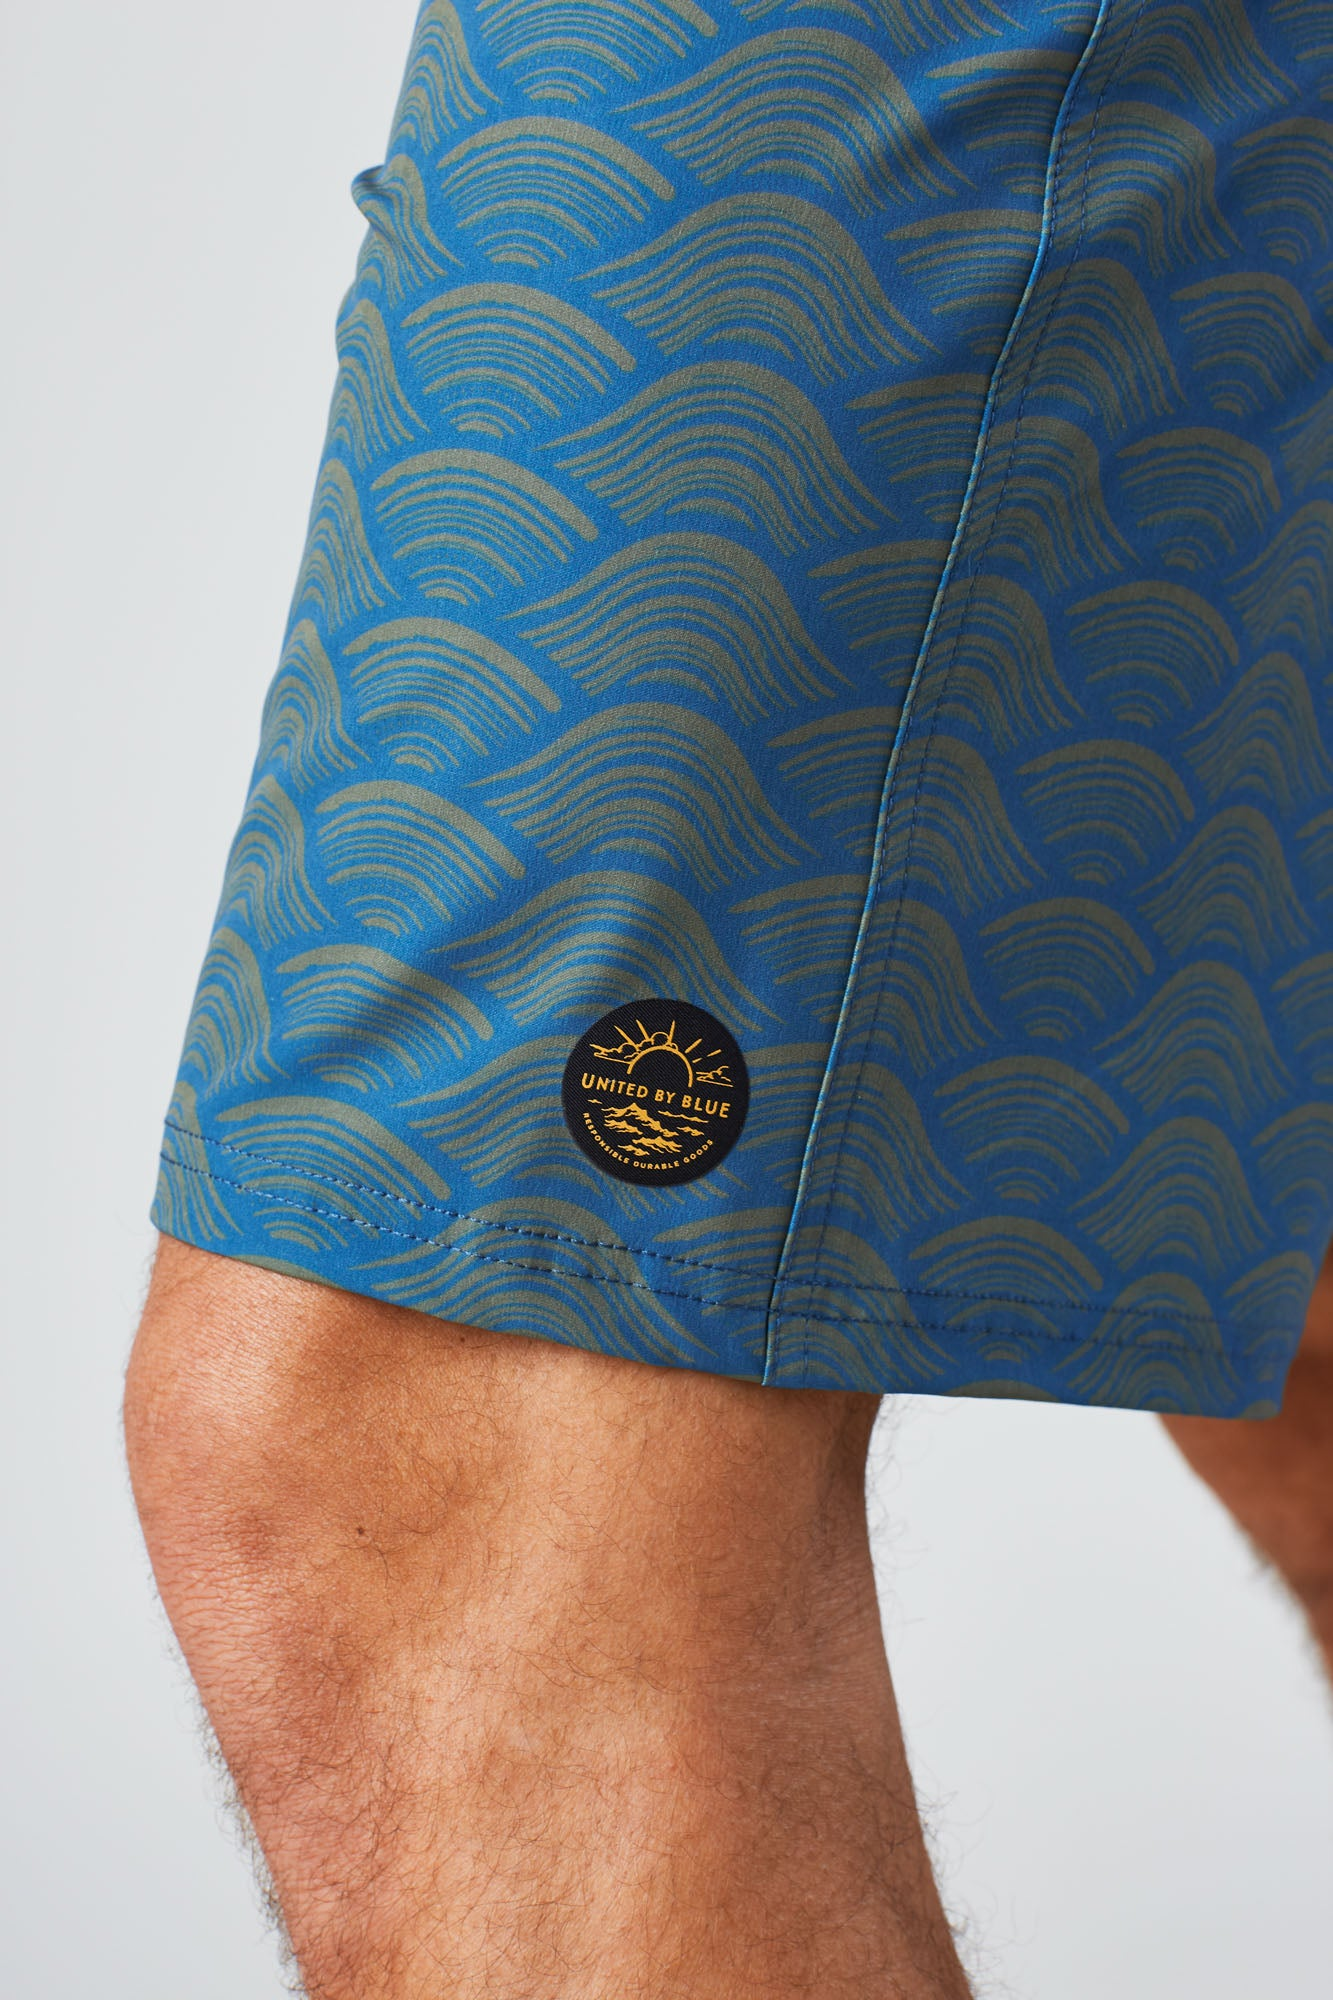 fac43c1144 Men's Riptide Performance Board Short | United By Blue